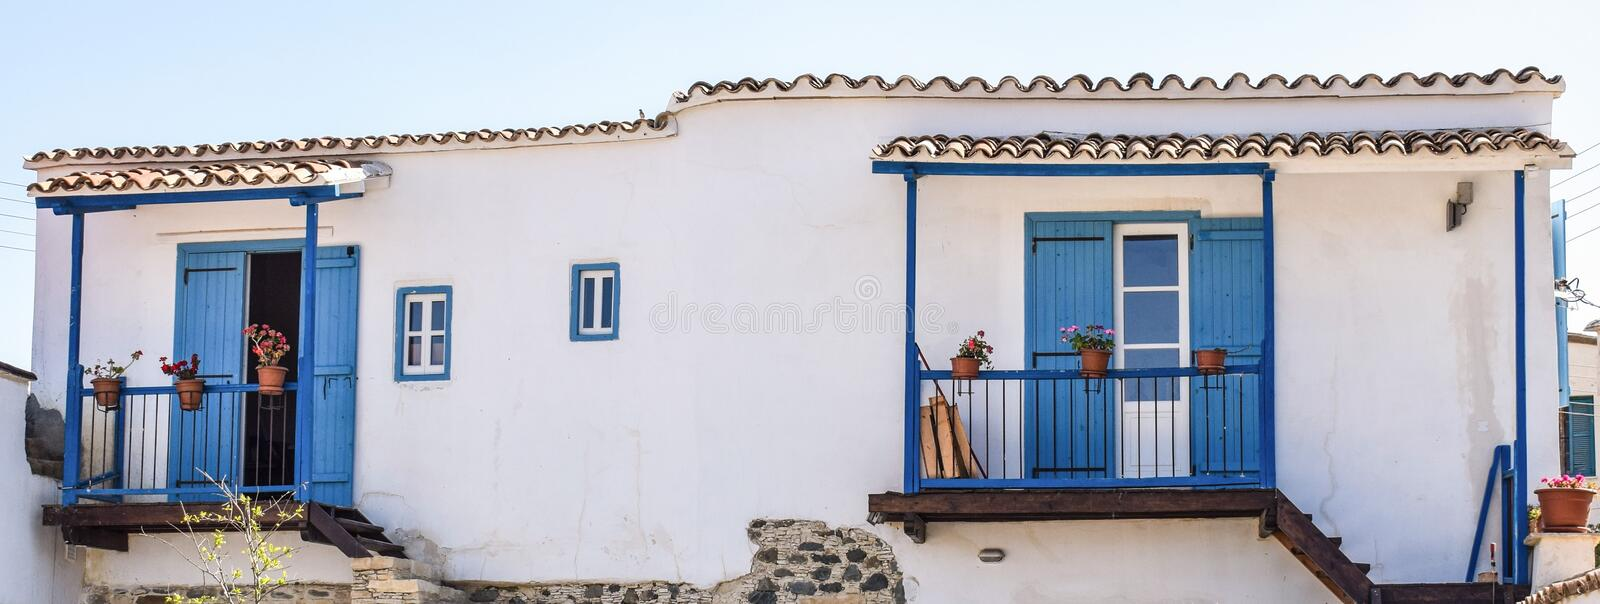 Property, House, Facade, Window royalty free stock photo